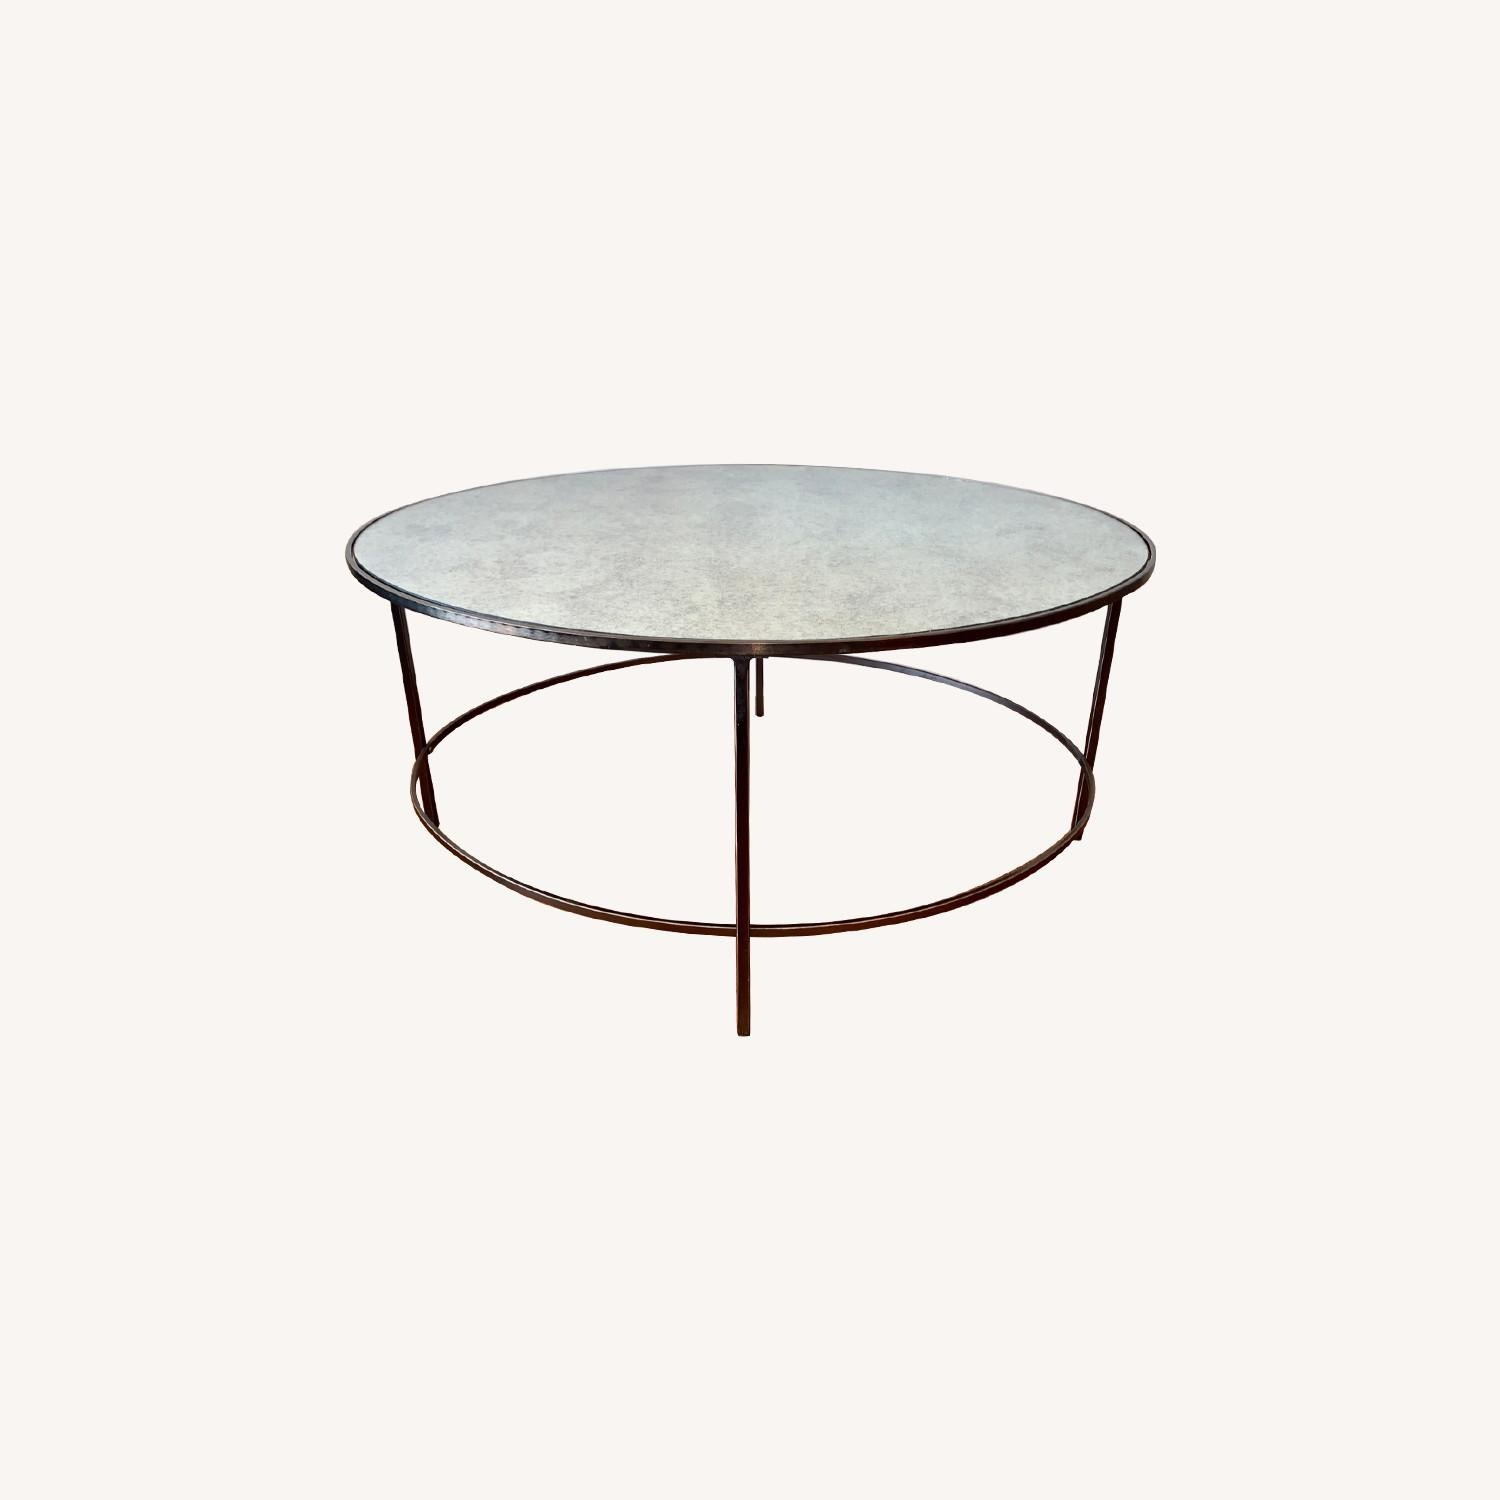 West Elm Foxed Mirrored Glass Oval Coffee Table - image-2